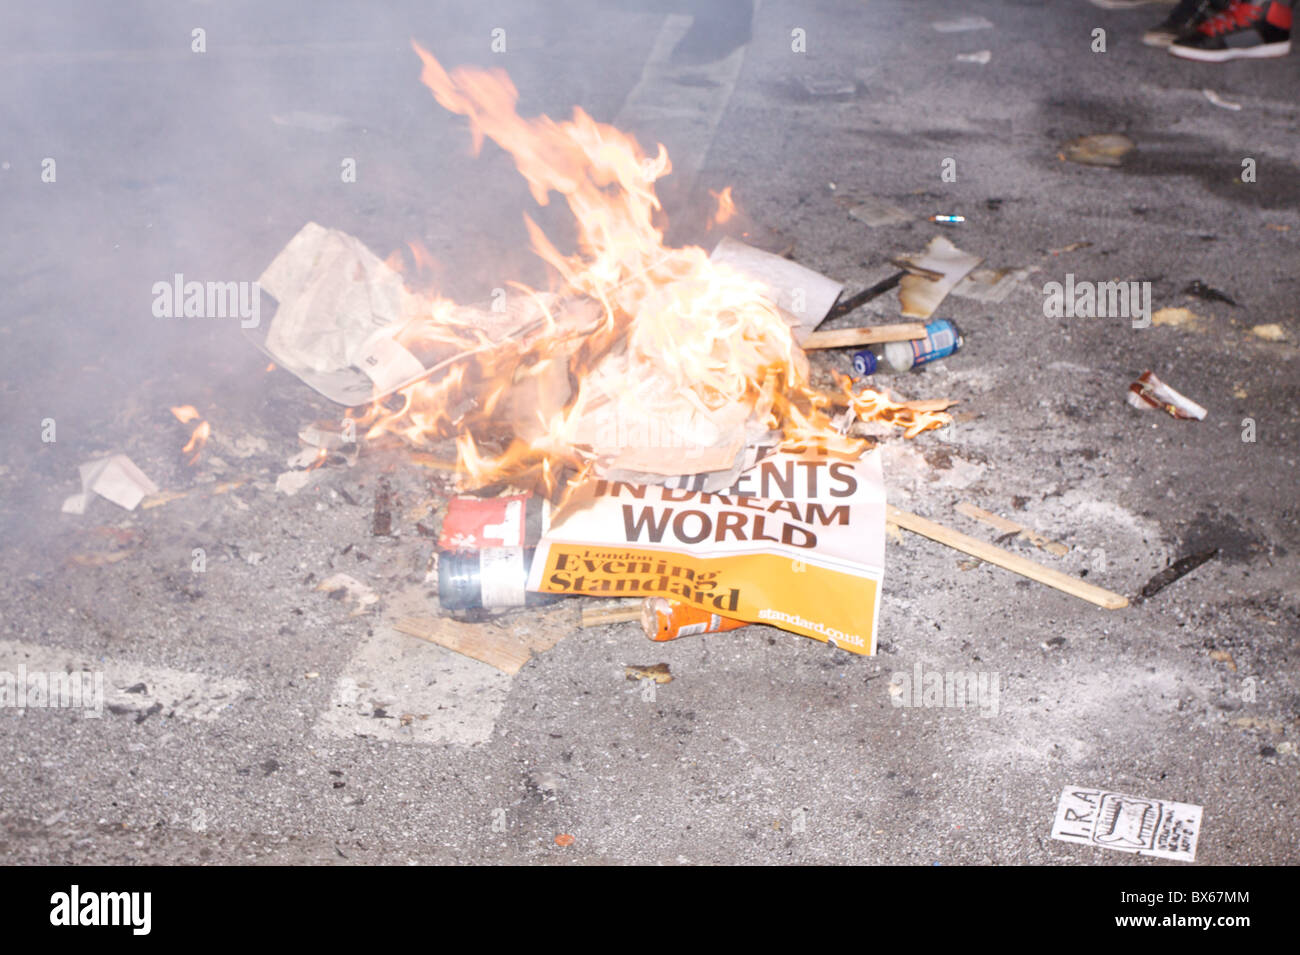 A small fire is made as students protest against rise in tuition fees in Whitehall, central London. - Stock Image